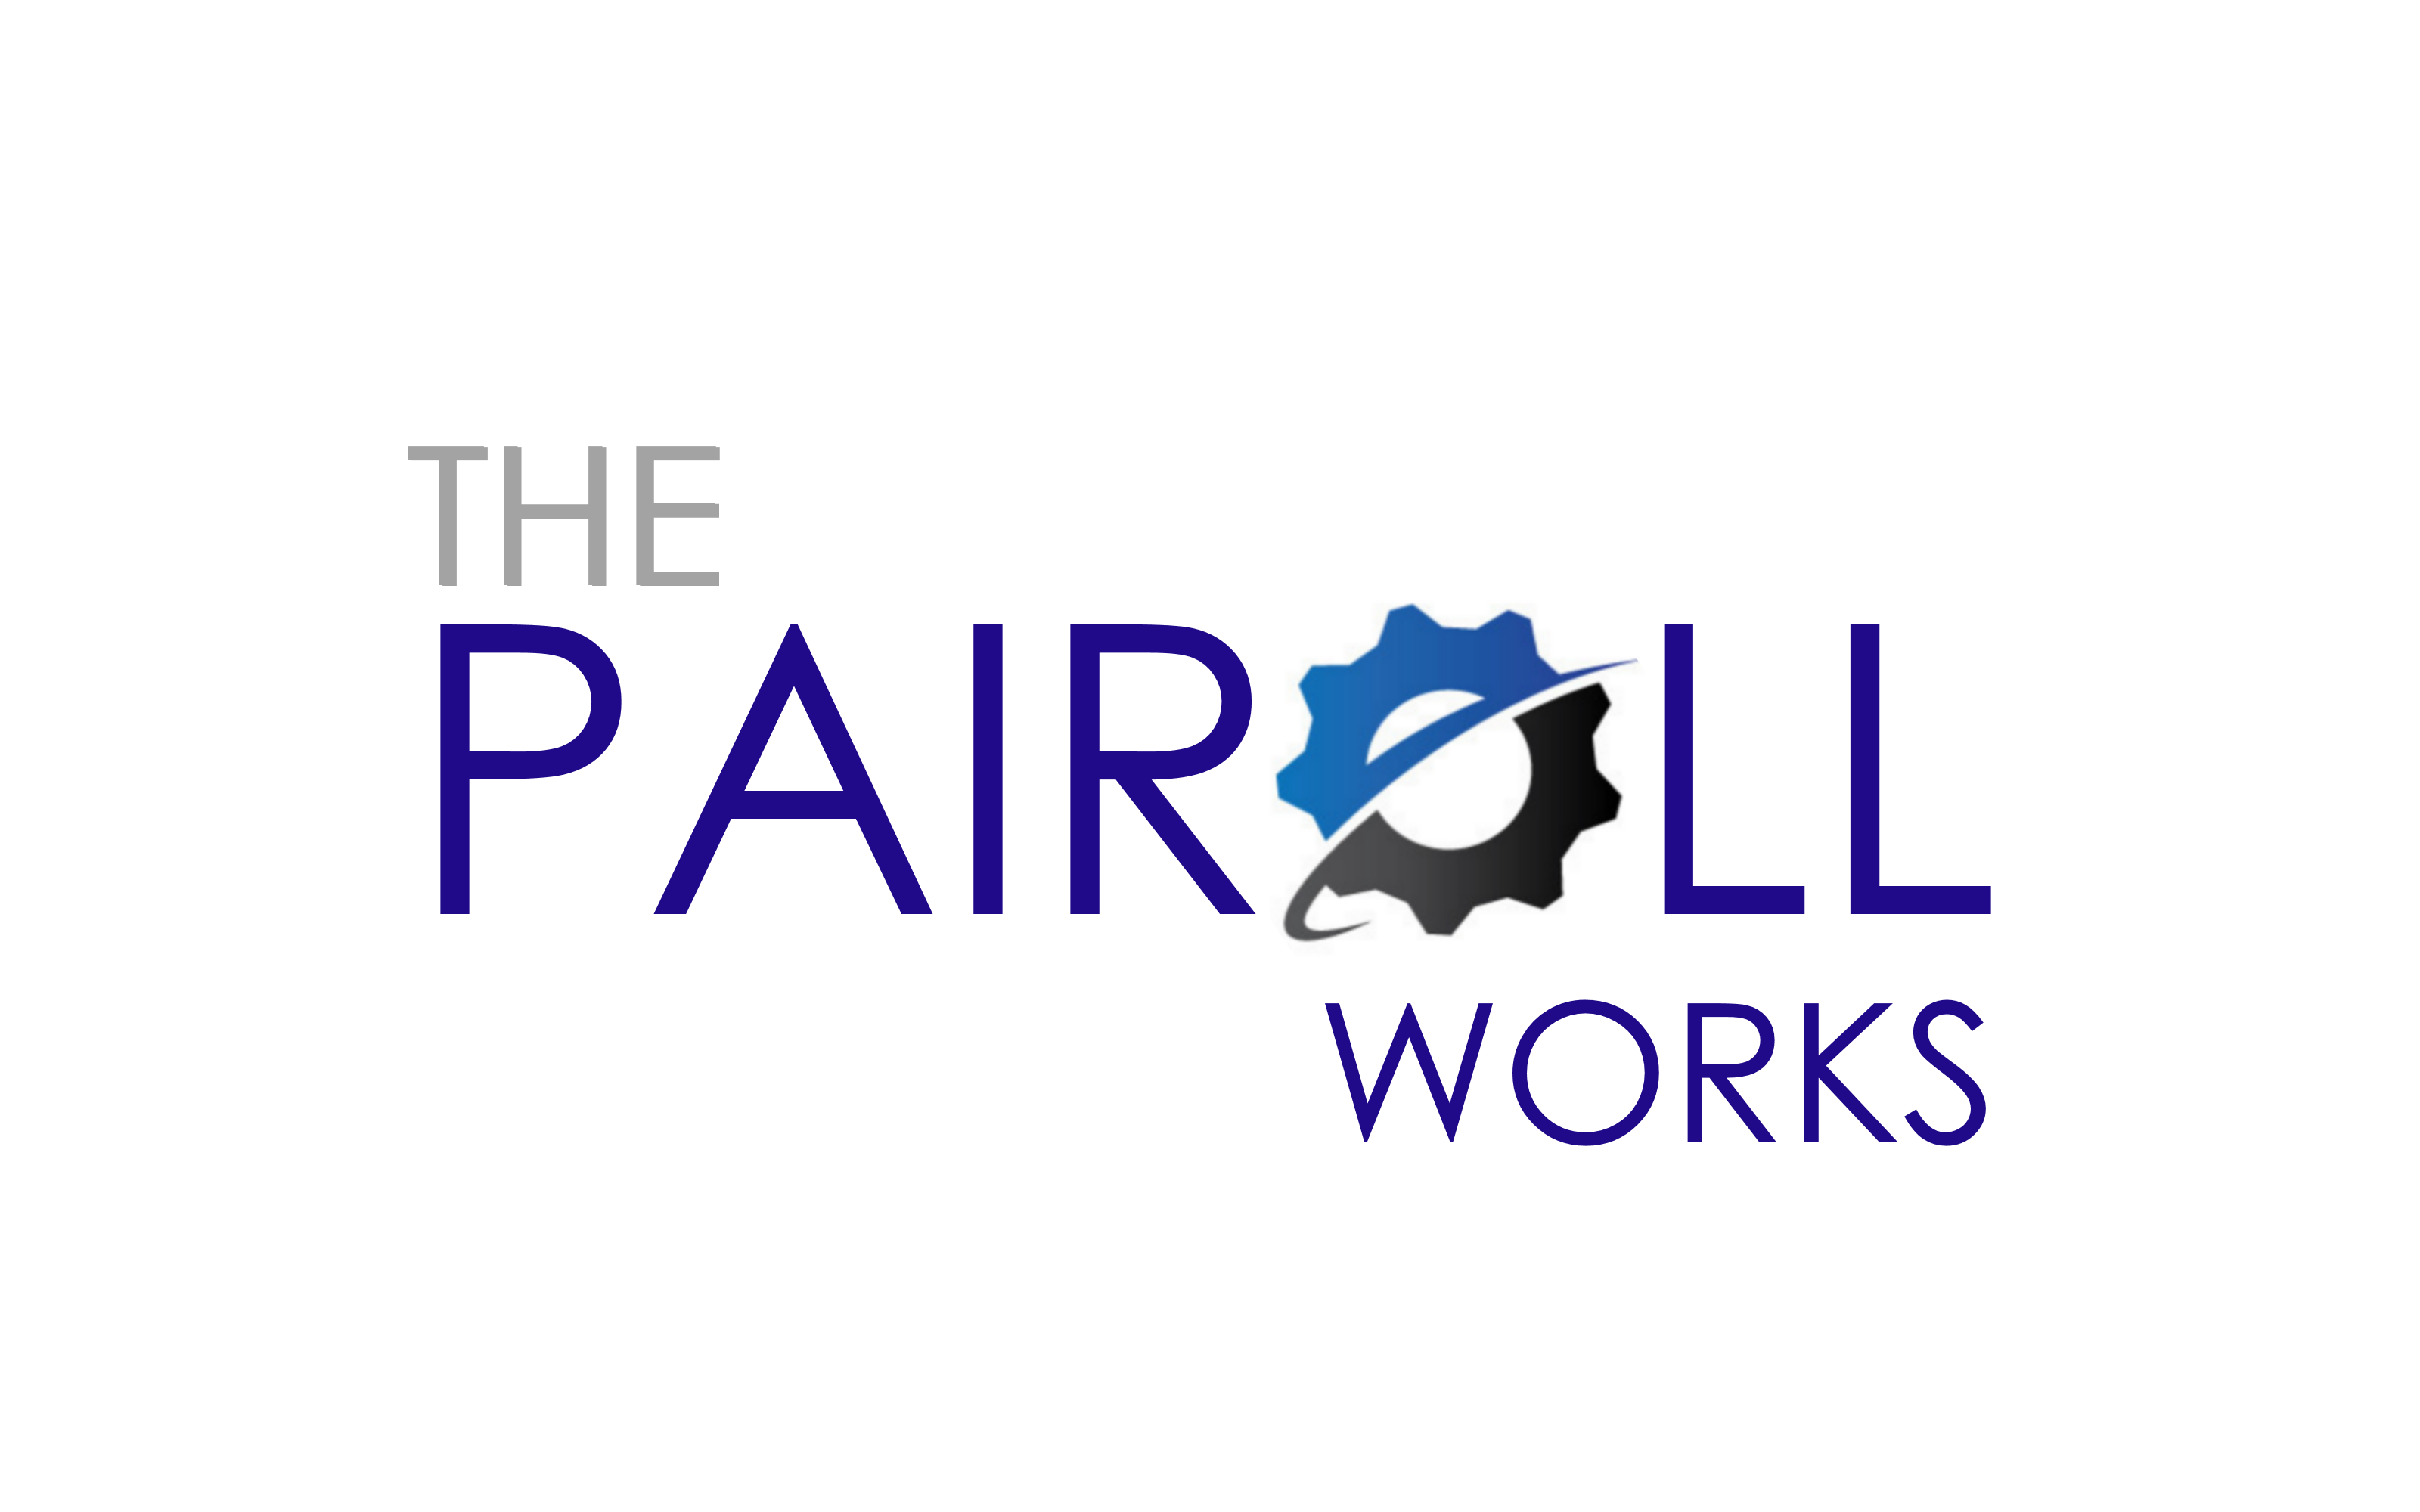 Logo Design by Roberto Bassi - Entry No. 135 in the Logo Design Contest Captivating Logo Design for The Payroll Works.